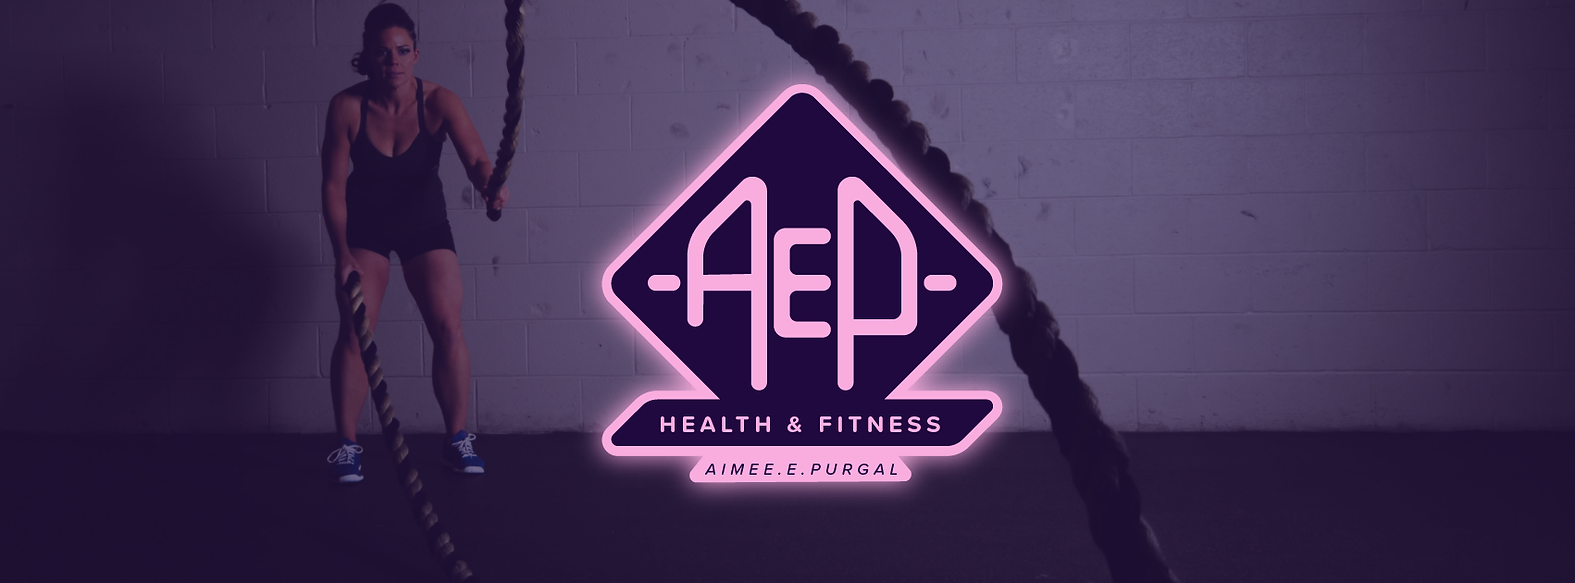 AEP-Fitness-Cover-Phot.png